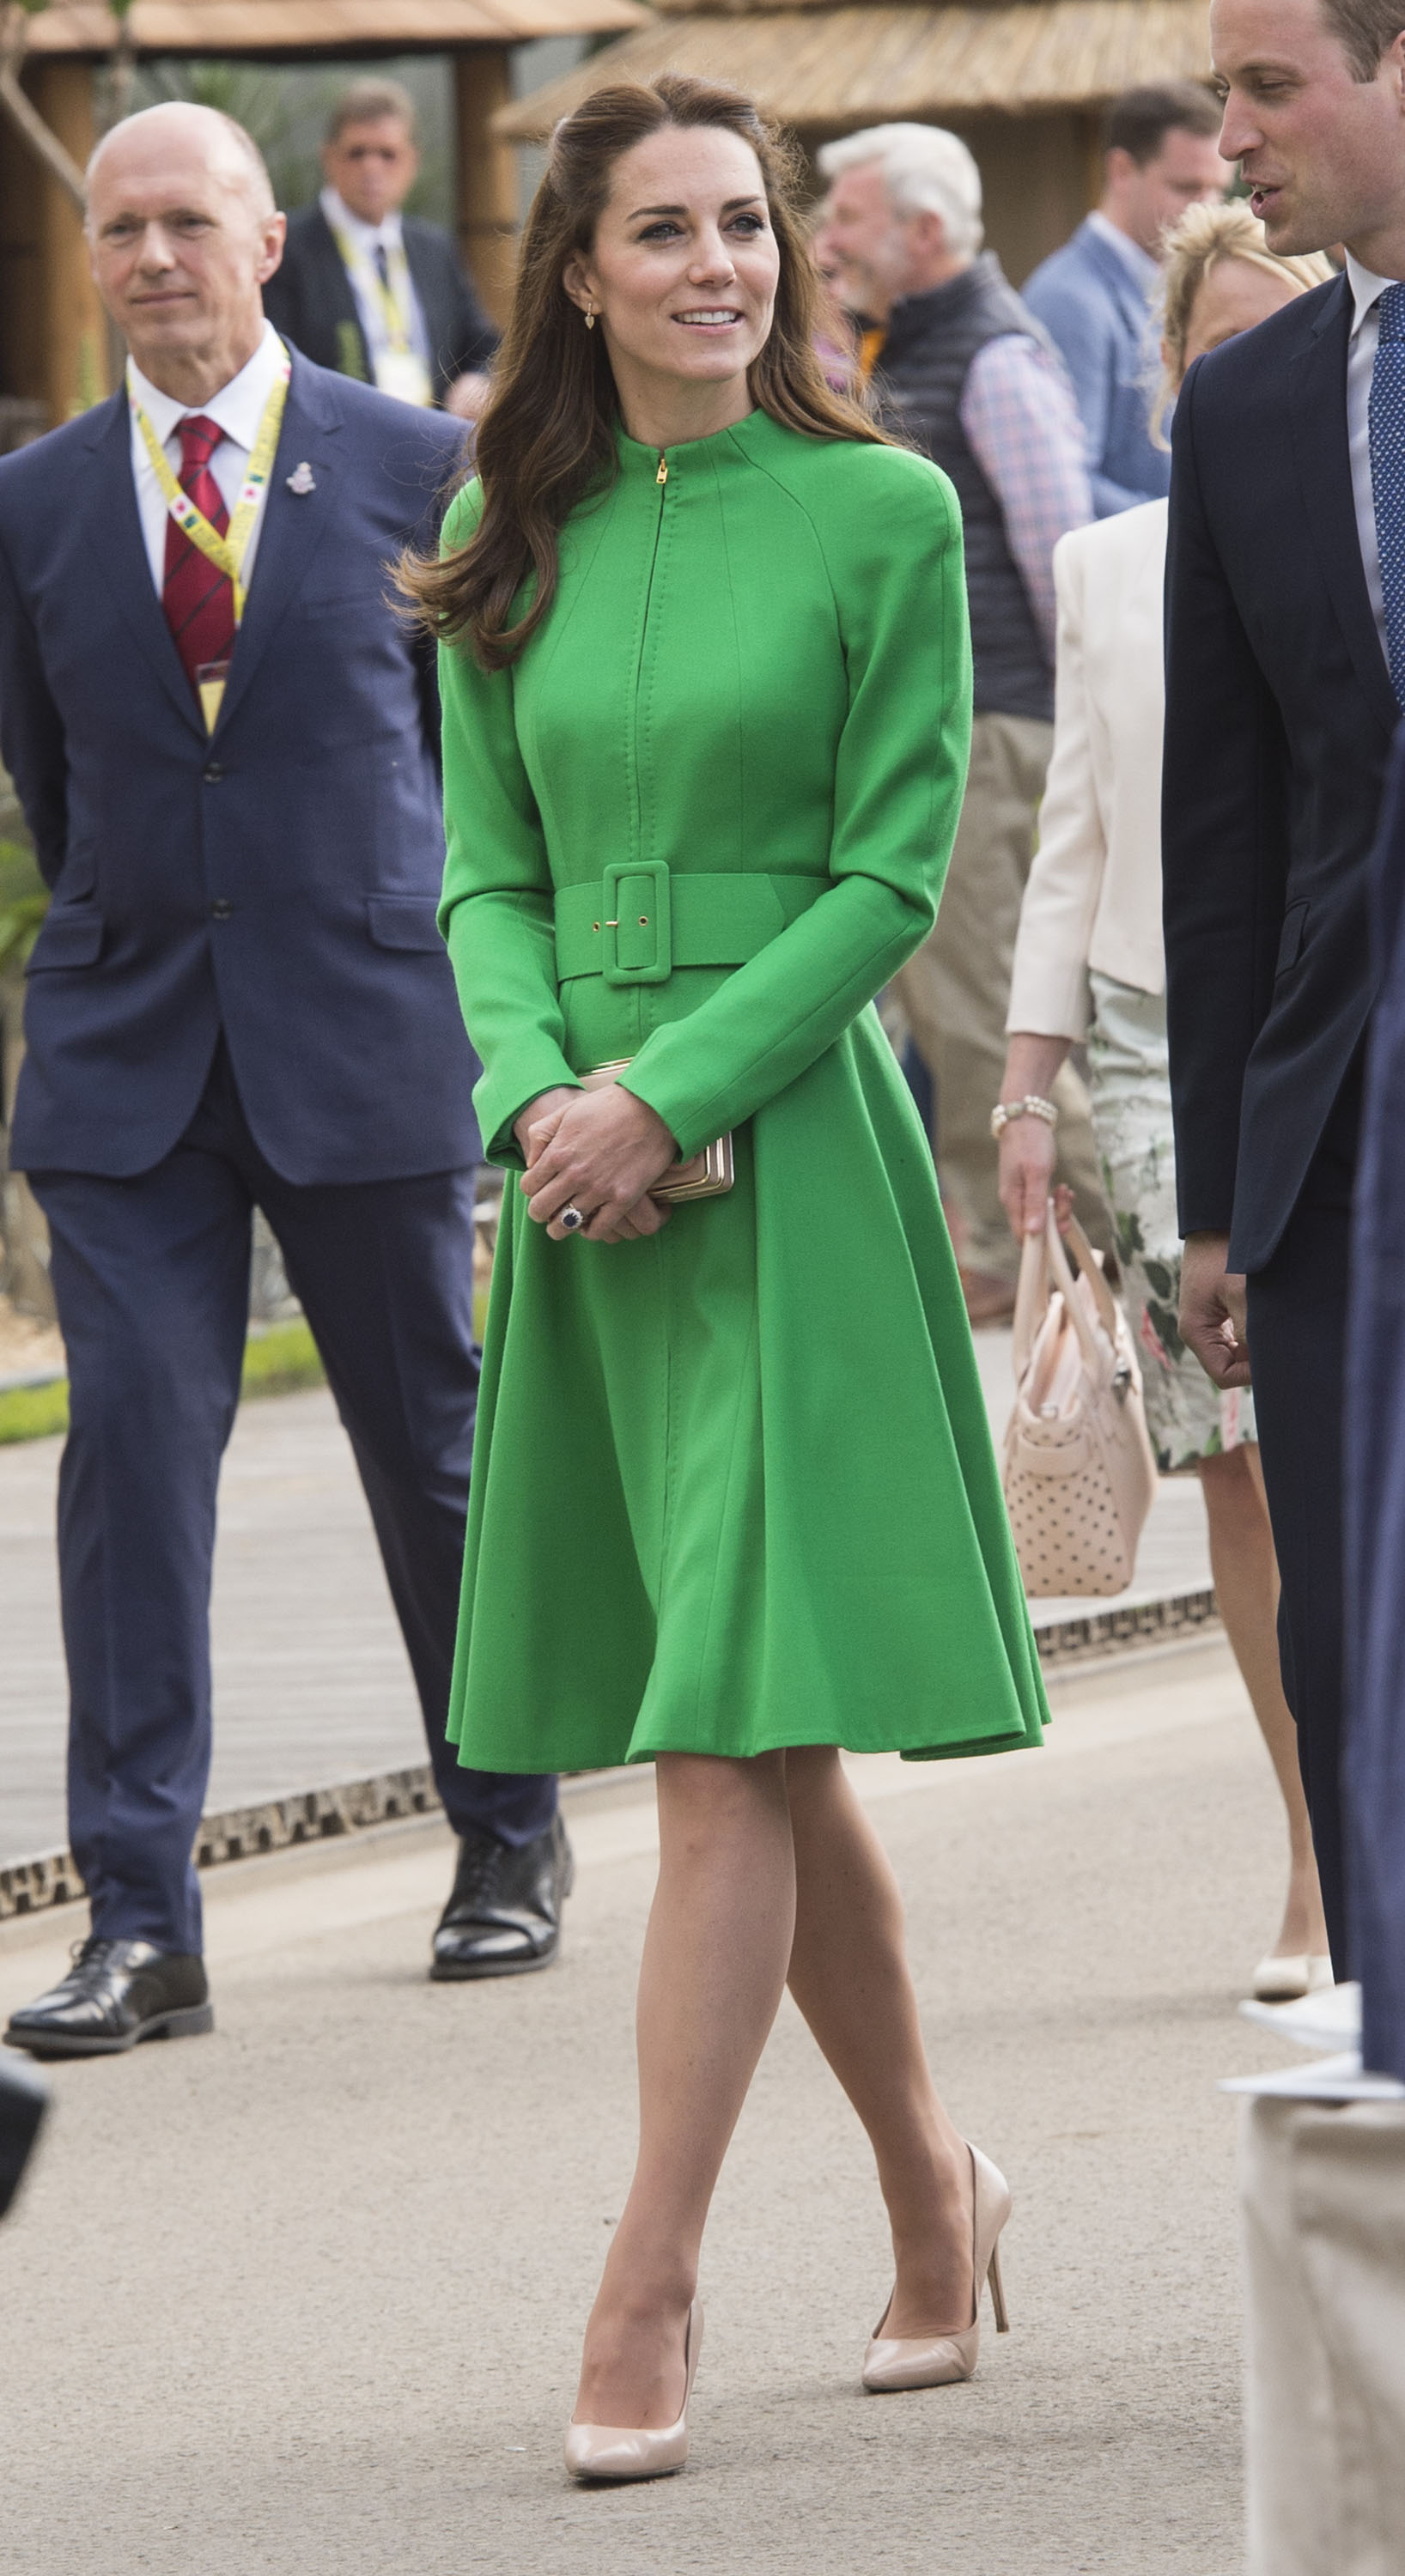 Catherine, Duchess of Cambridge, attends Chelsea Flower Show press day at Royal Hospital Chelsea in London on May 23, 2016.